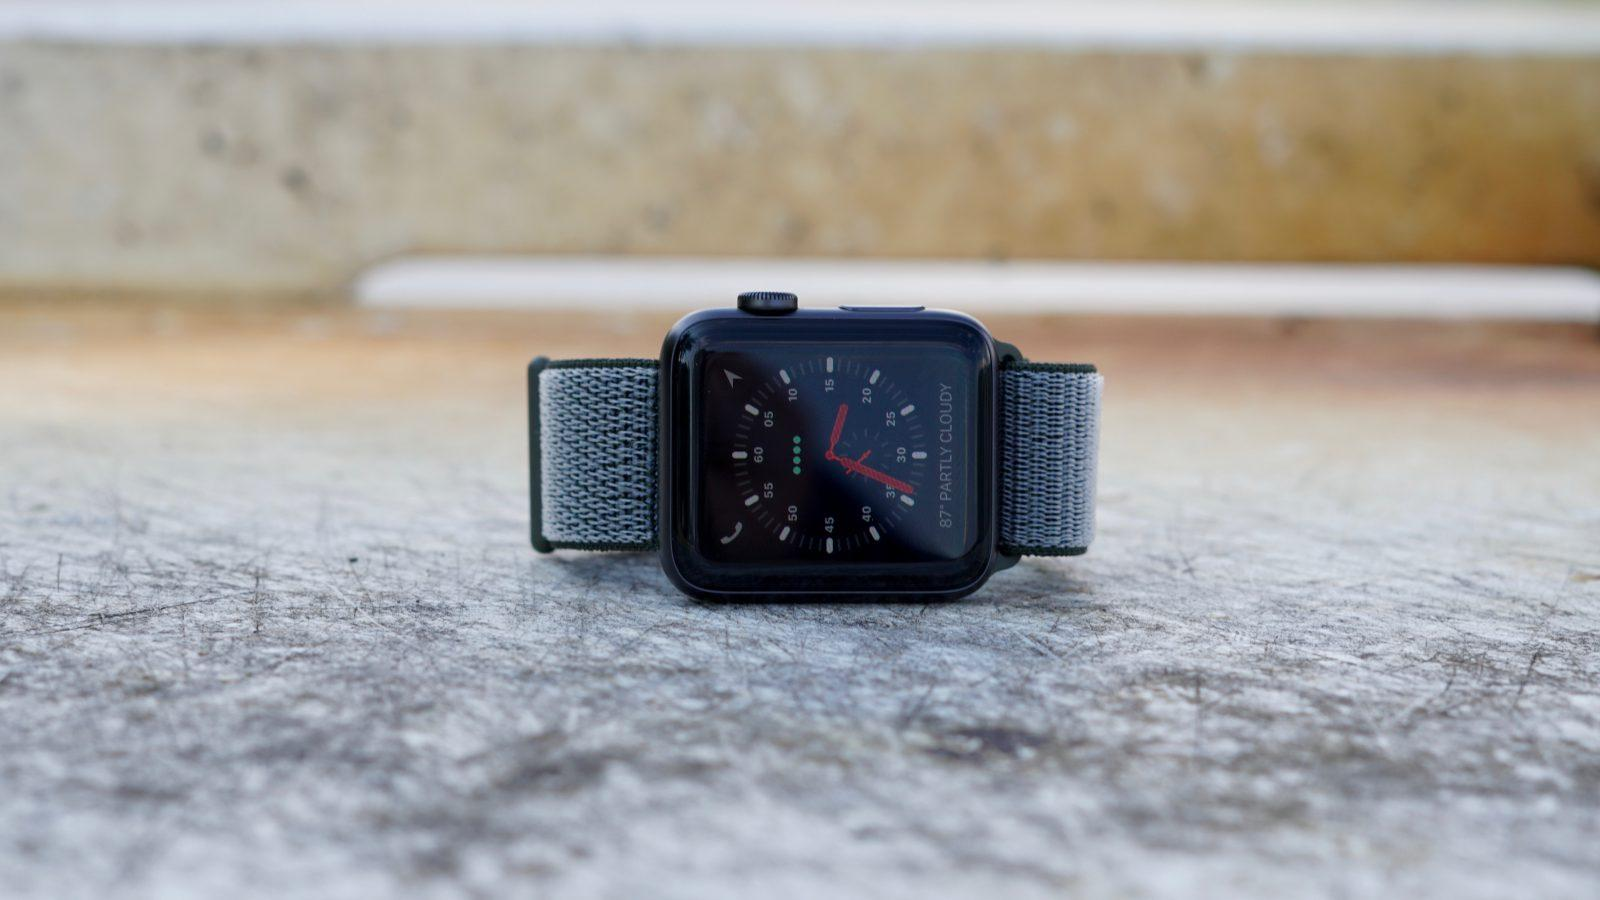 Review: Apple Watch Series 3 unlocks new potential with LTE